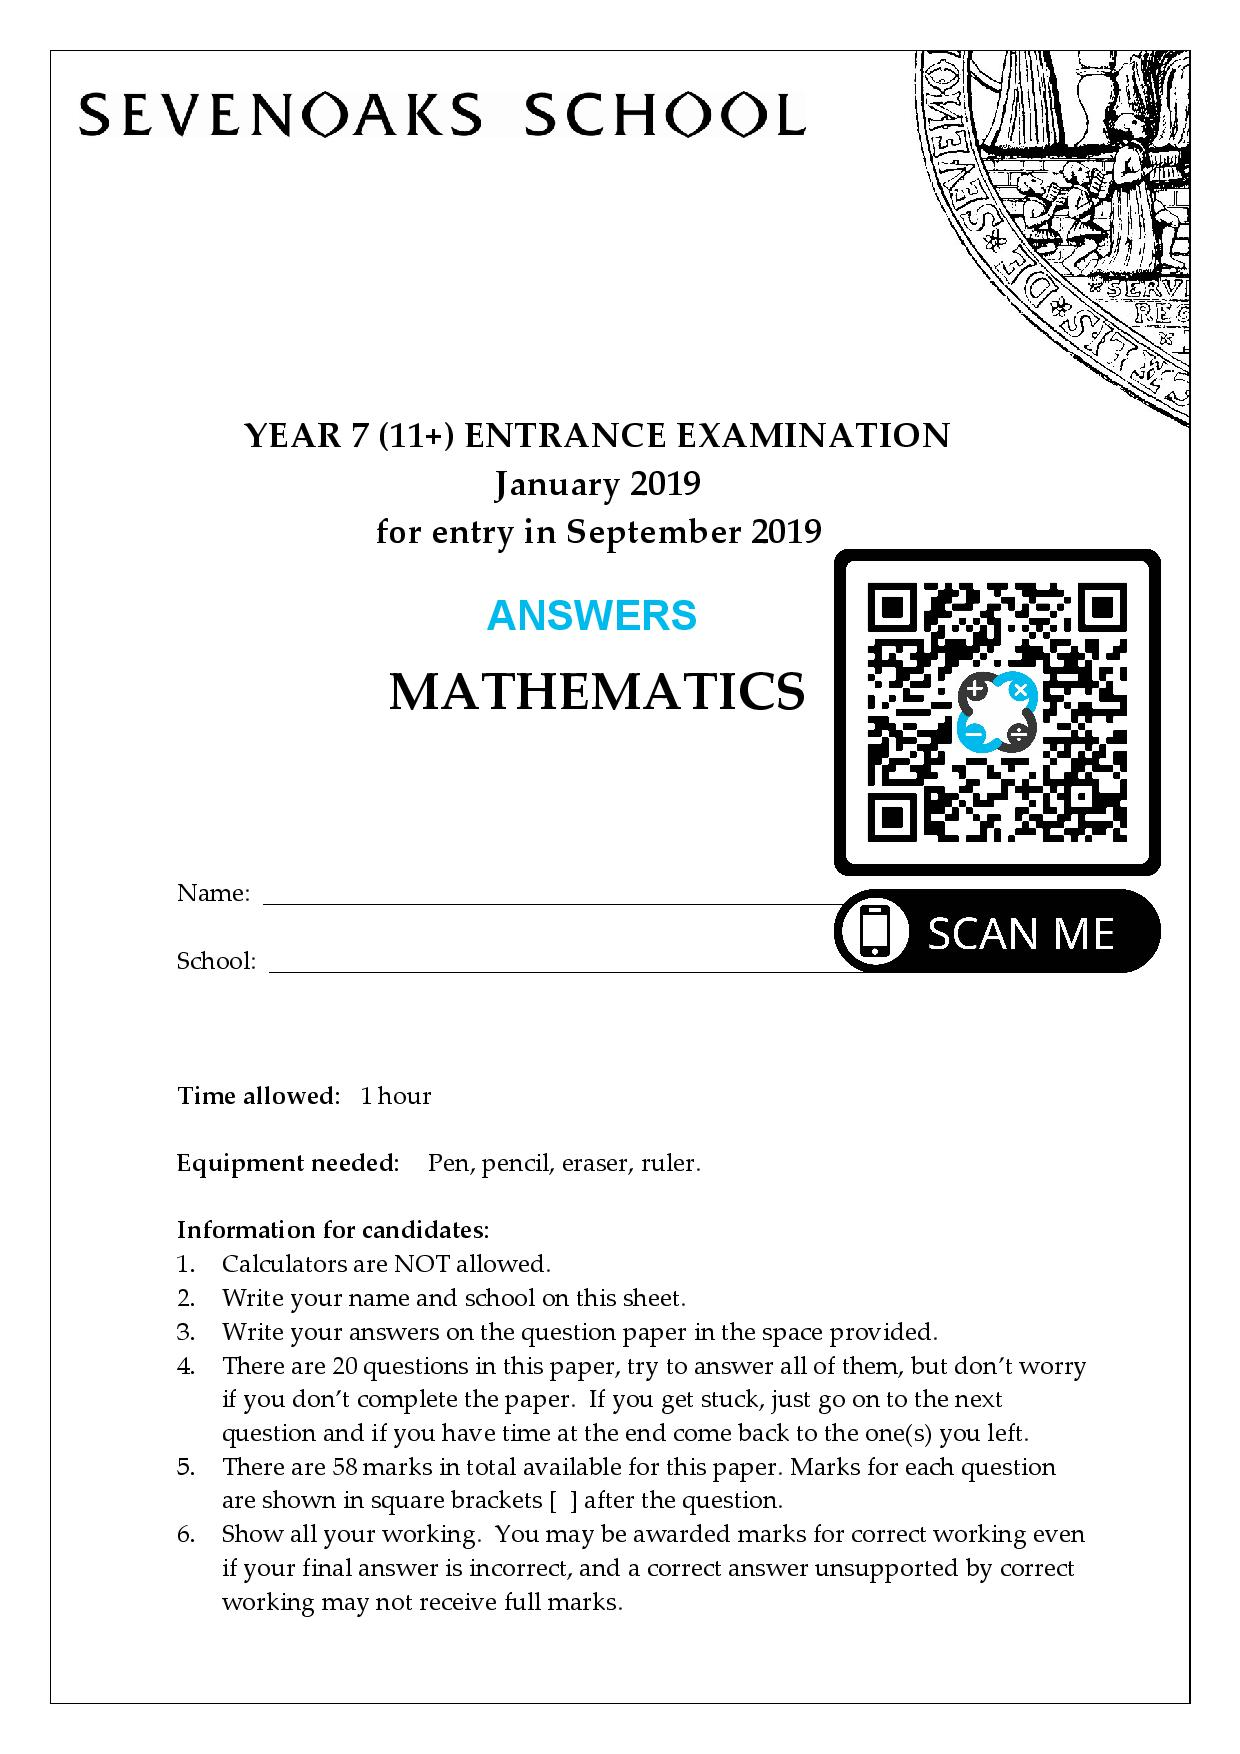 Sevenoaks School YEAR 7 11 ENTRANCE EXAMINATION January 2019 for entry in September 2019 MATHEMATICS Answer Paper page 001